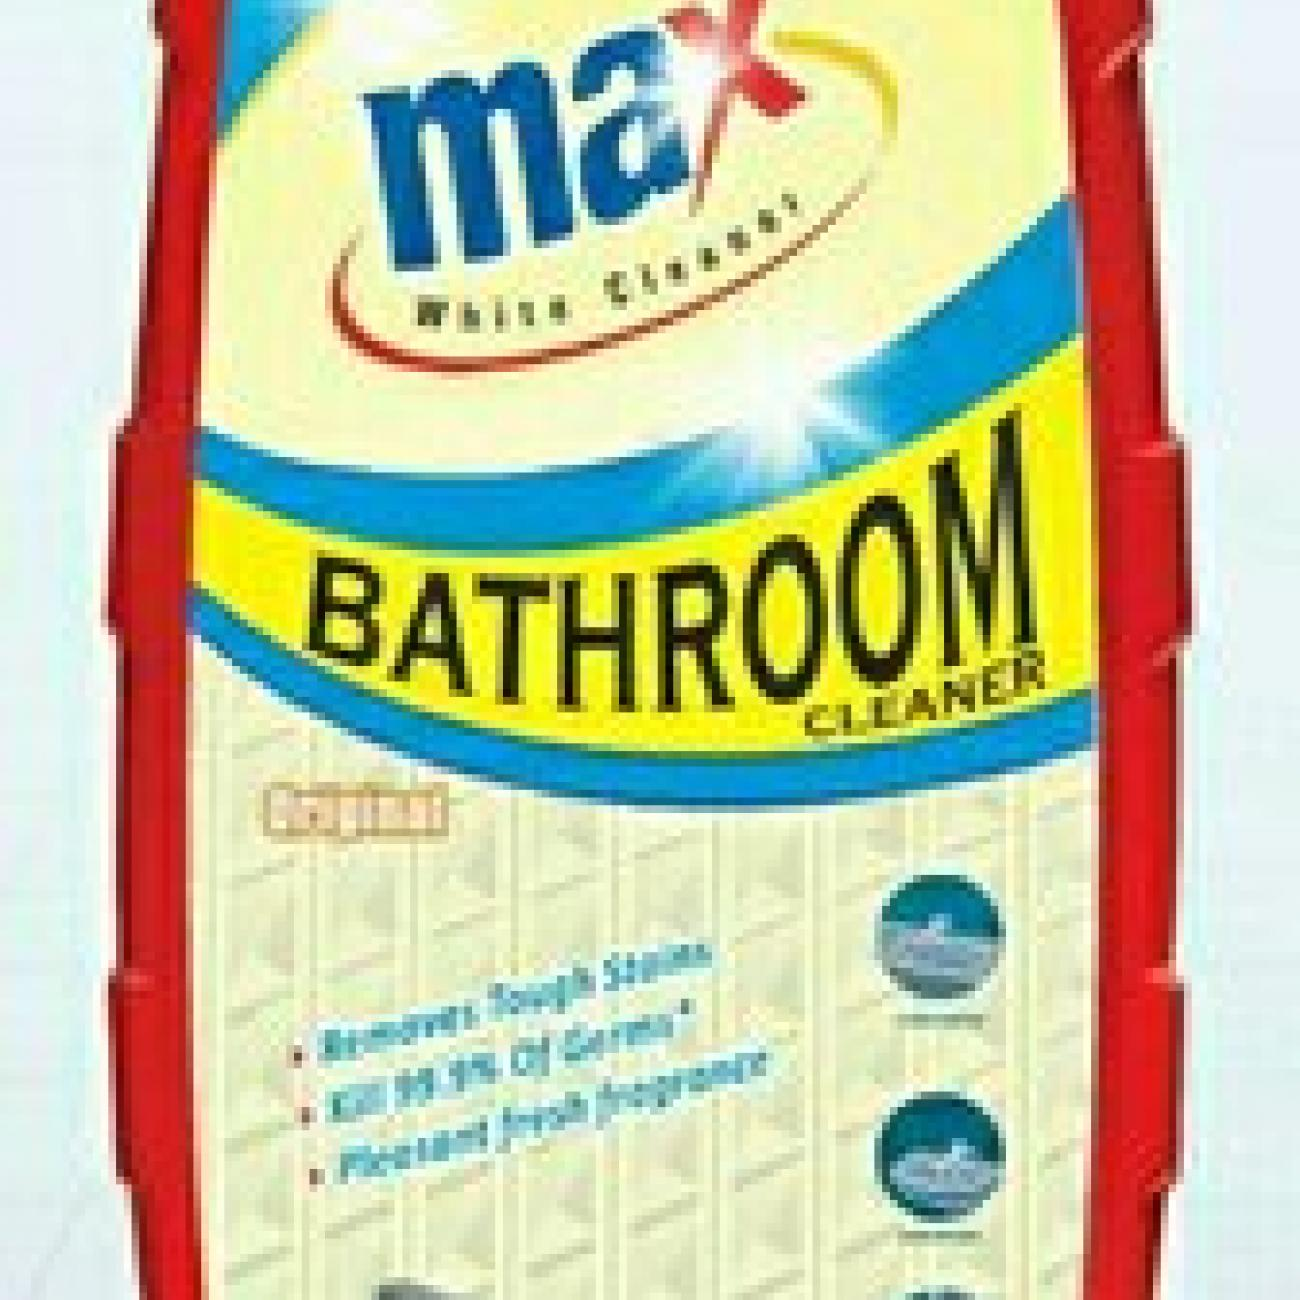 D Max Bathroom Cleaners